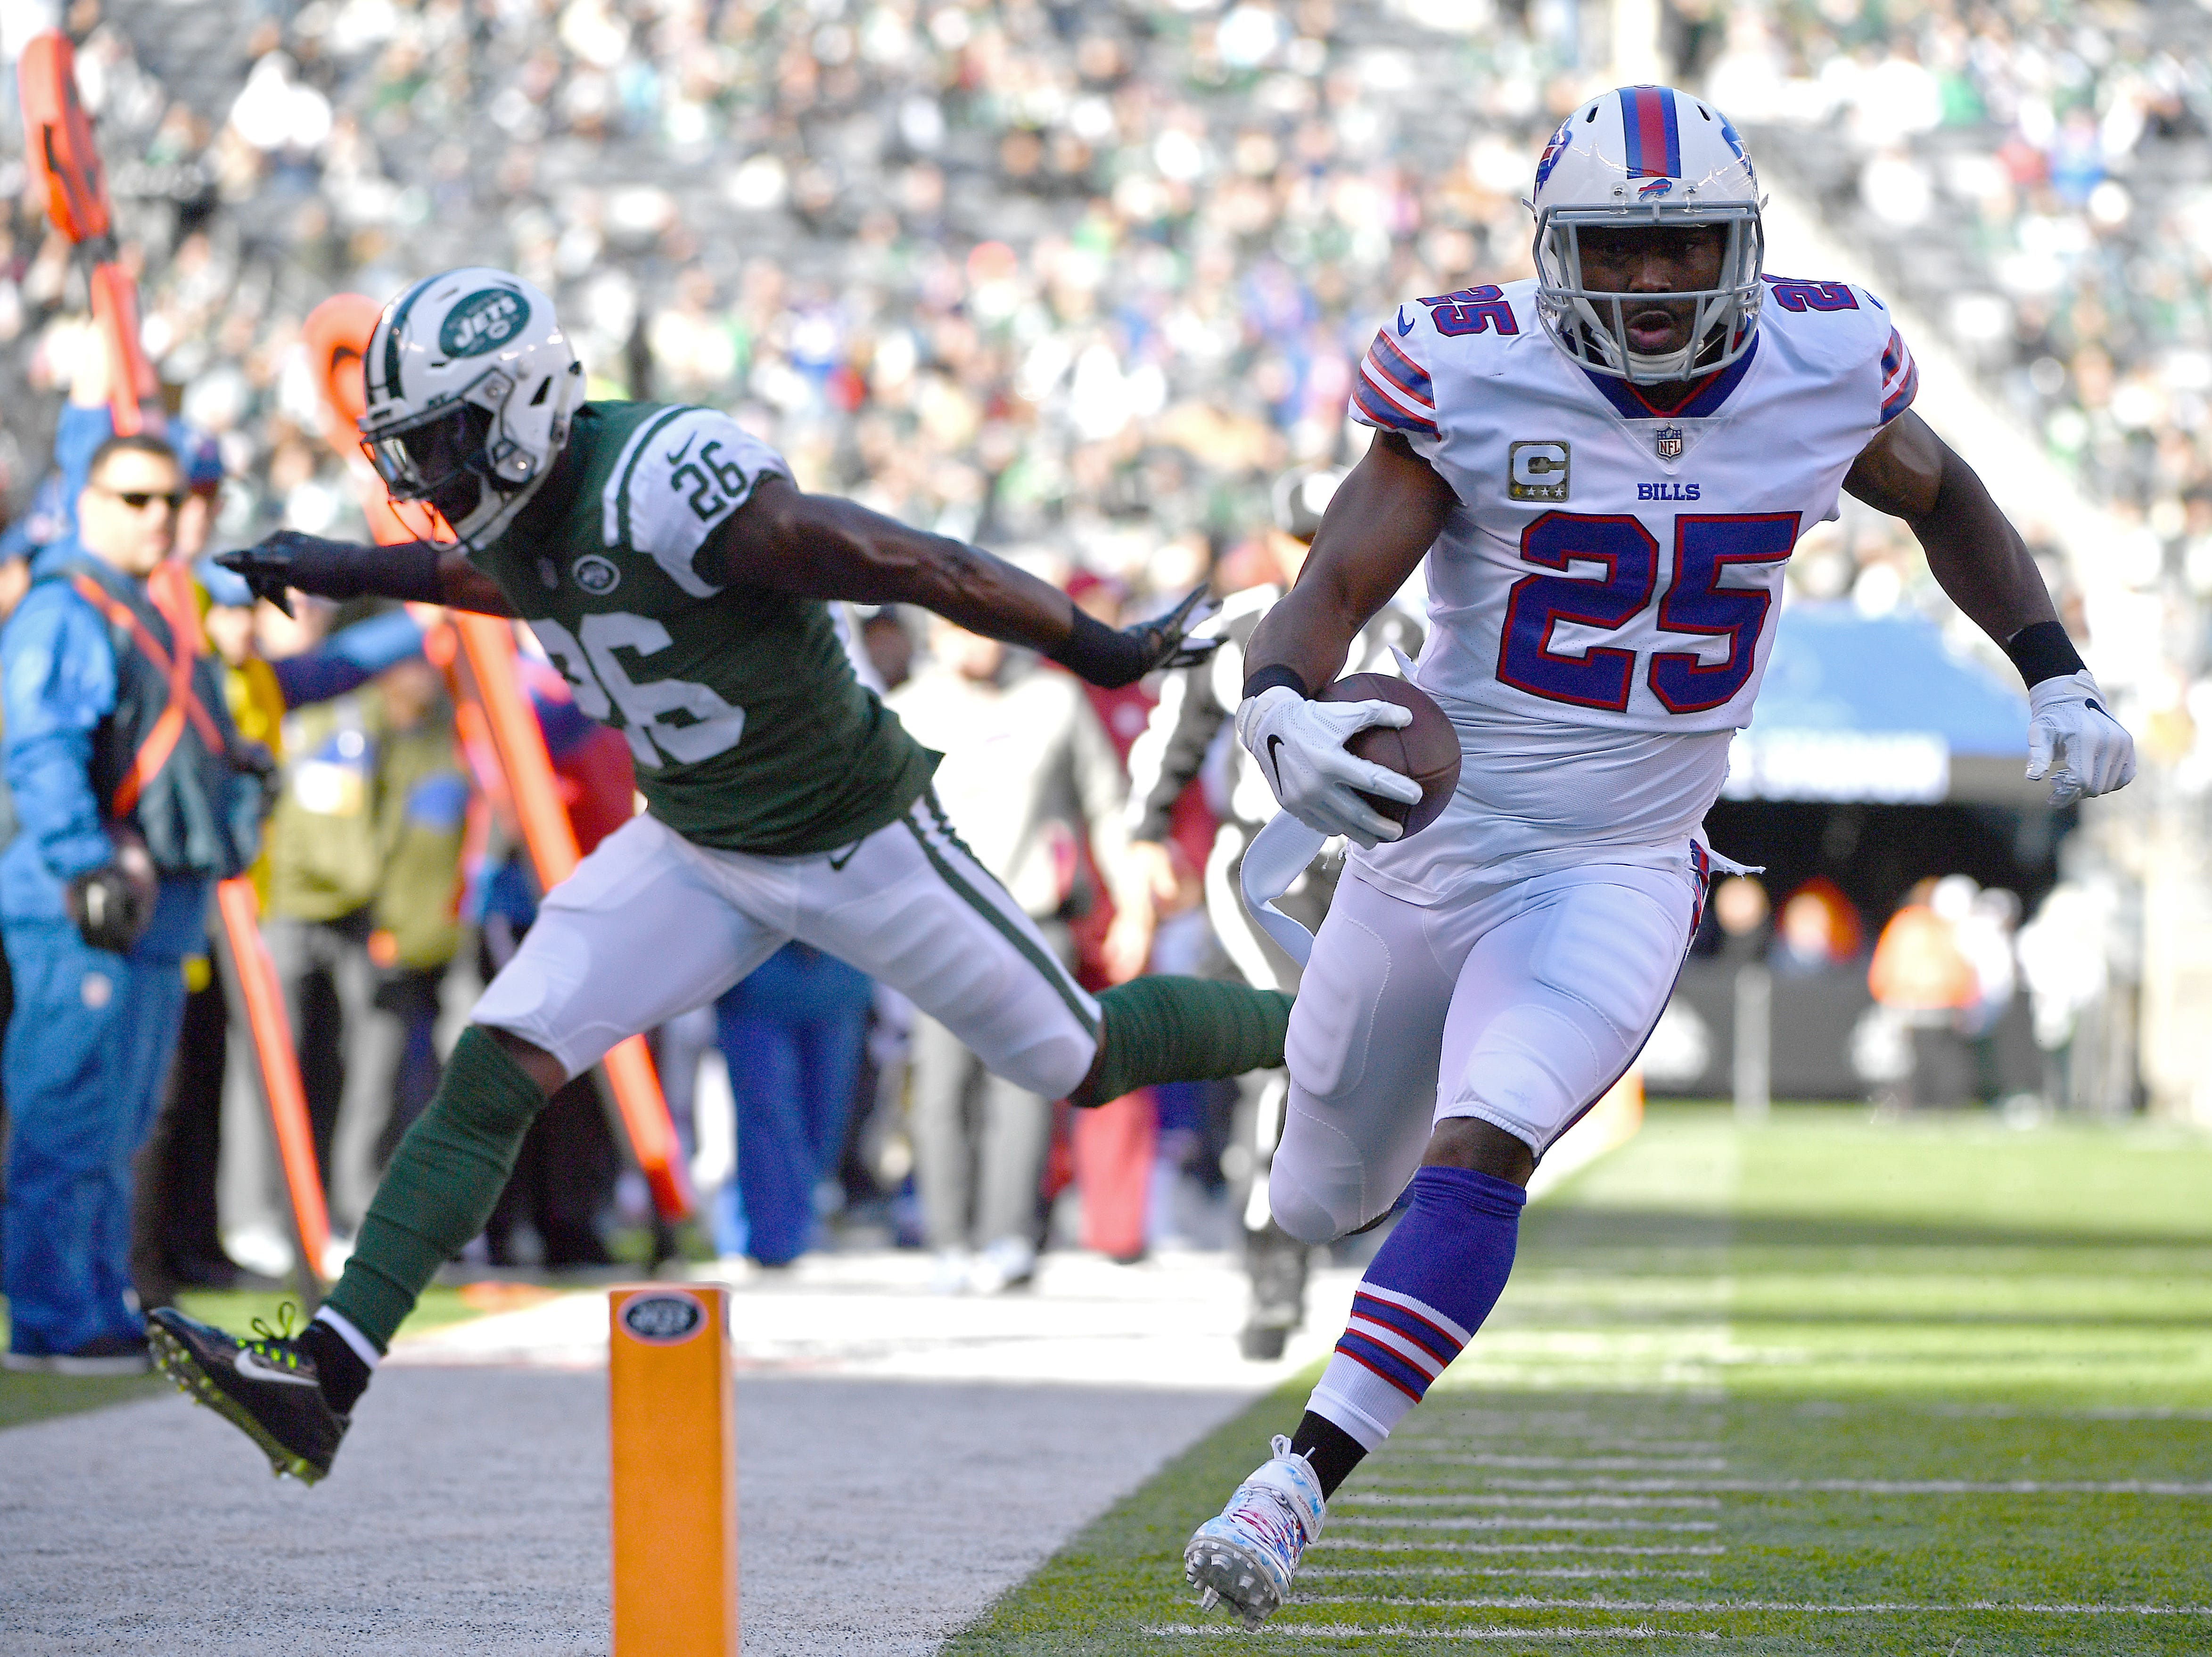 EAST RUTHERFORD, NEW JERSEY - NOVEMBER 11: LeSean McCoy #25 of the Buffalo Bills scores a first quarter rushing touchdown past Marcus Maye #26 of the New York Jets at MetLife Stadium on November 11, 2018 in East Rutherford, New Jersey. (Photo by Mark Brown/Getty Images)